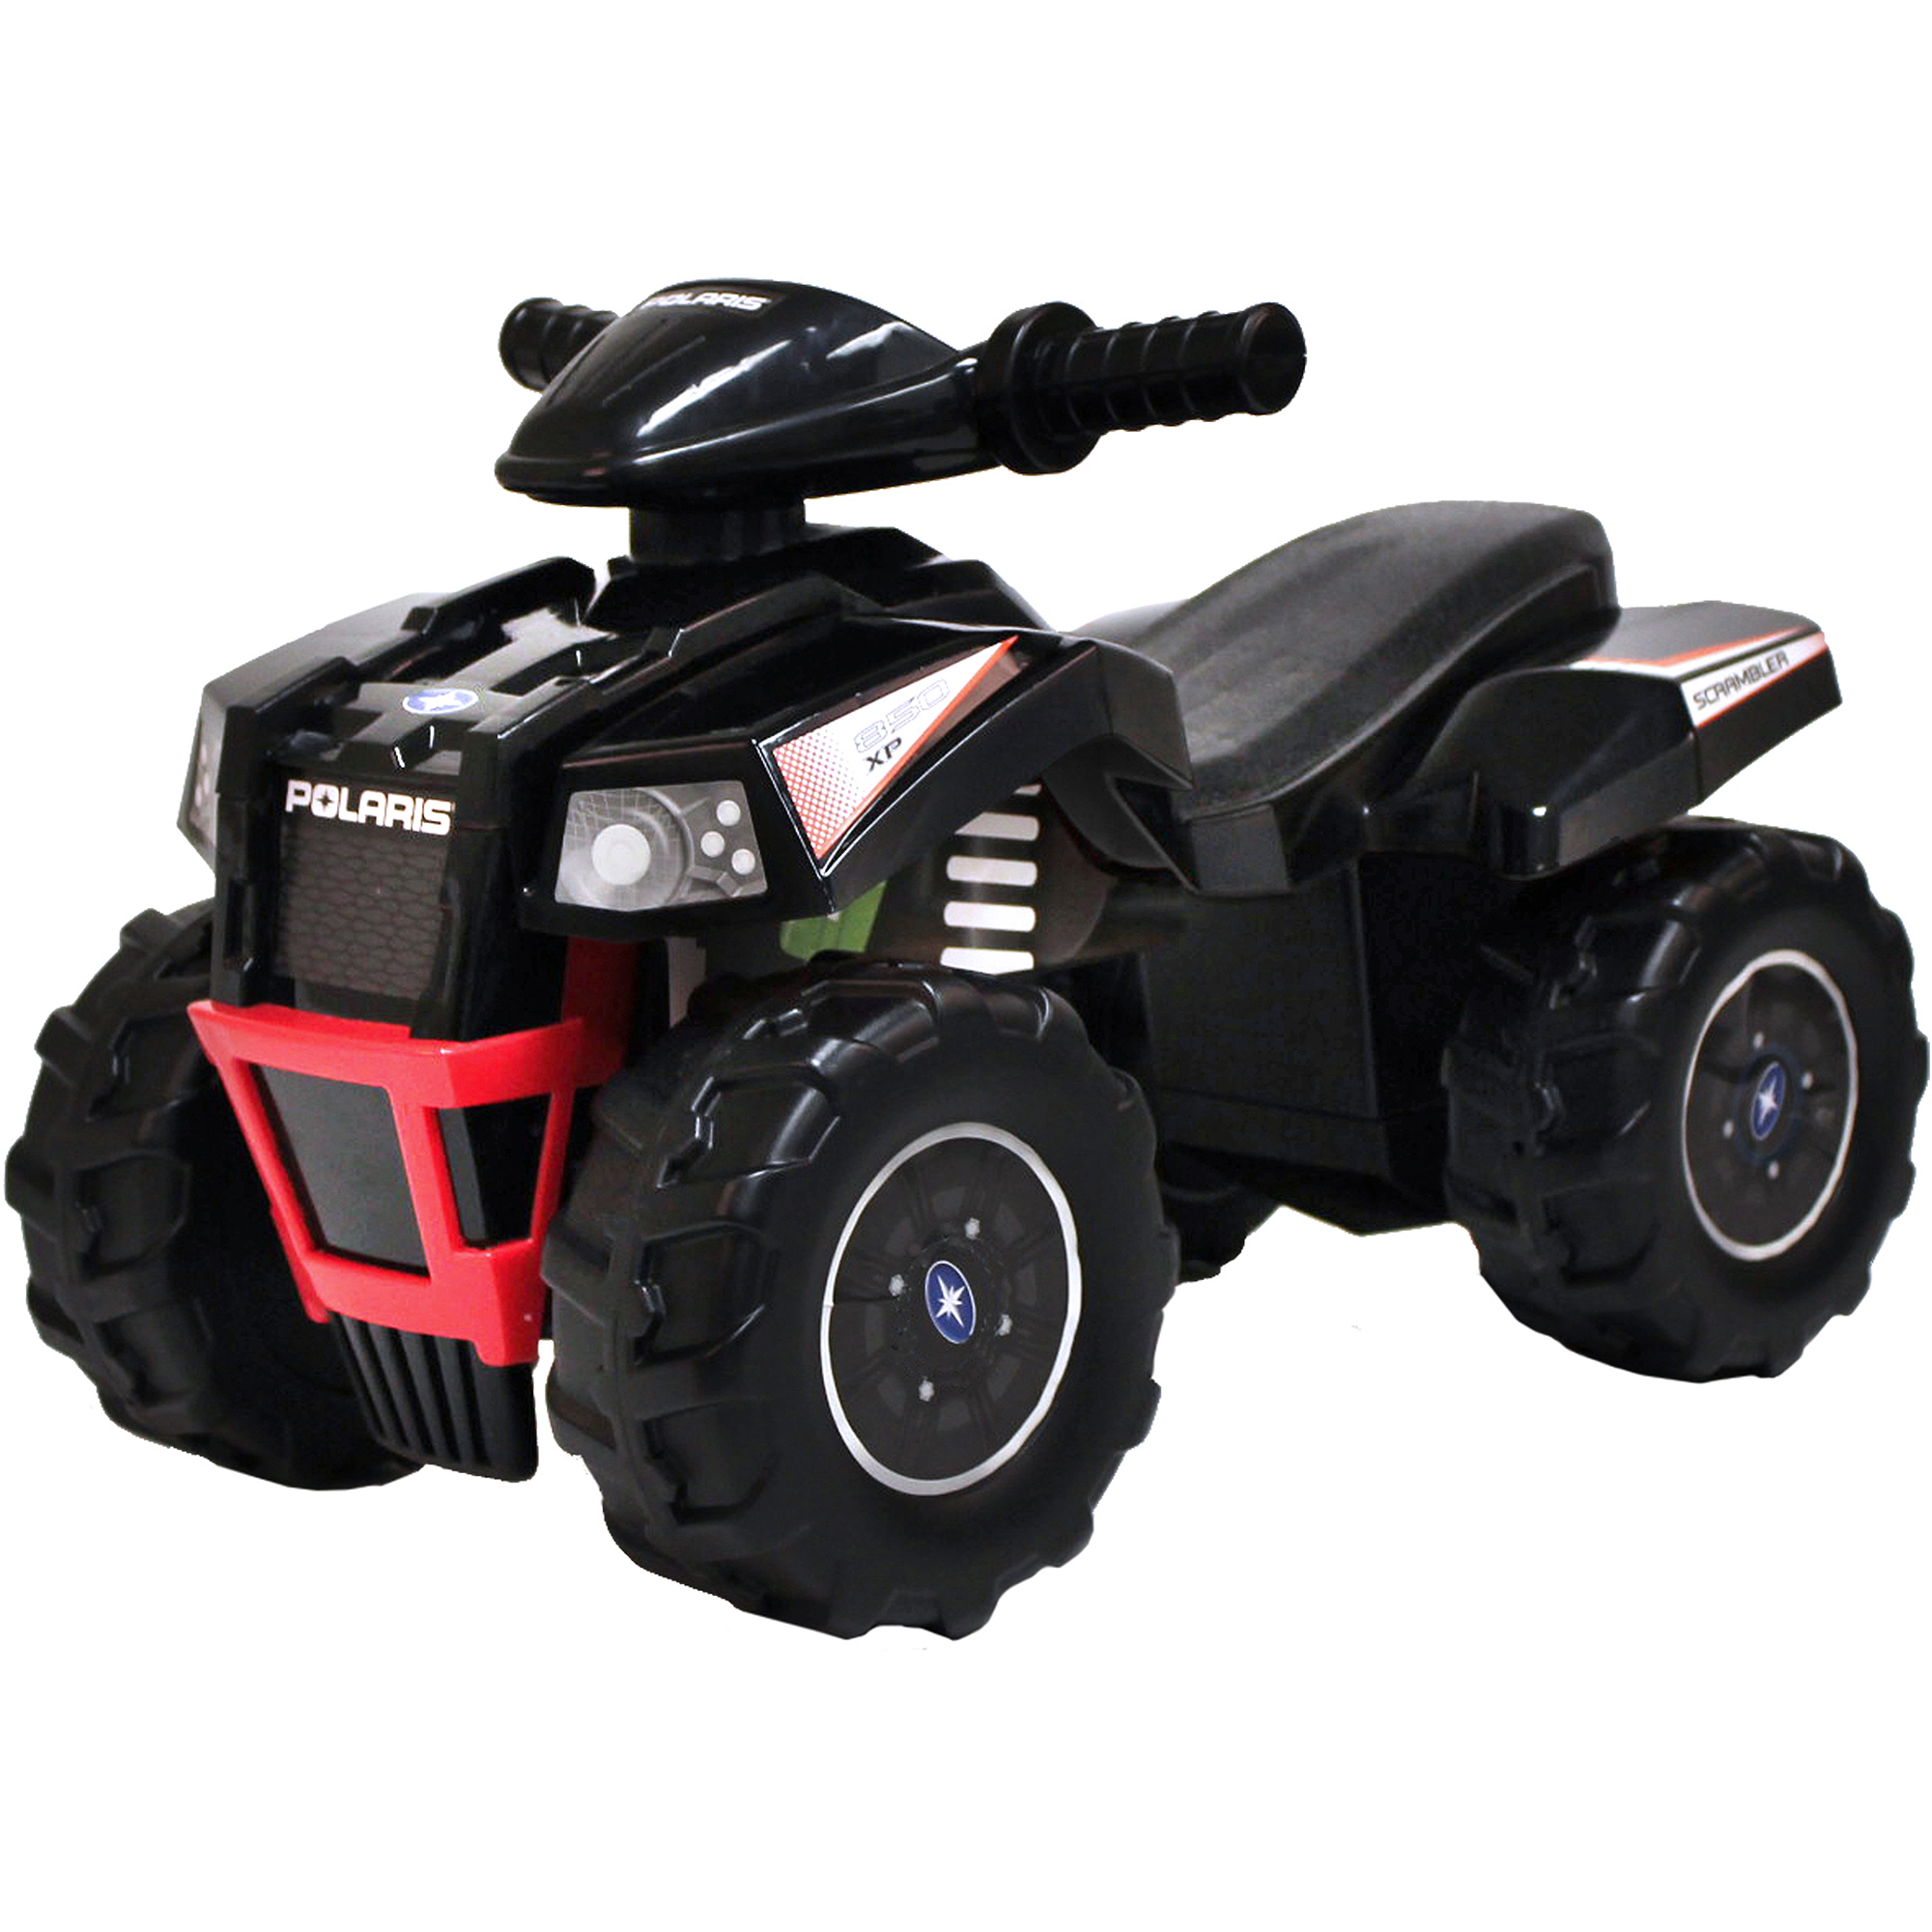 Polaris Scrambler ATV Ride-On, Black